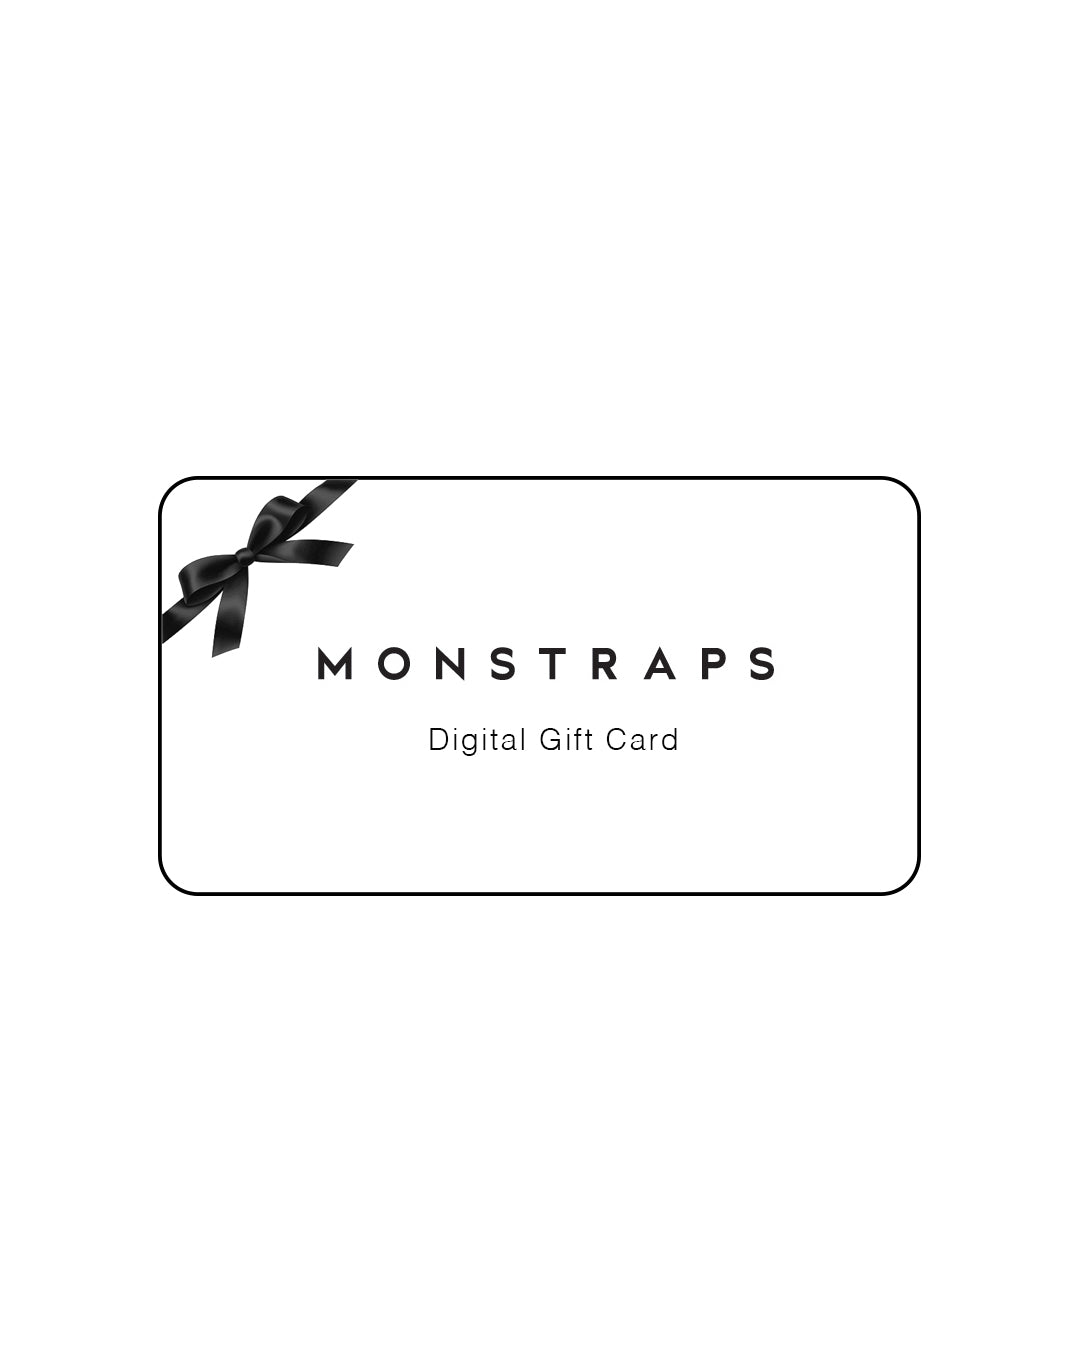 MONSTRAPS Digital Gift Card